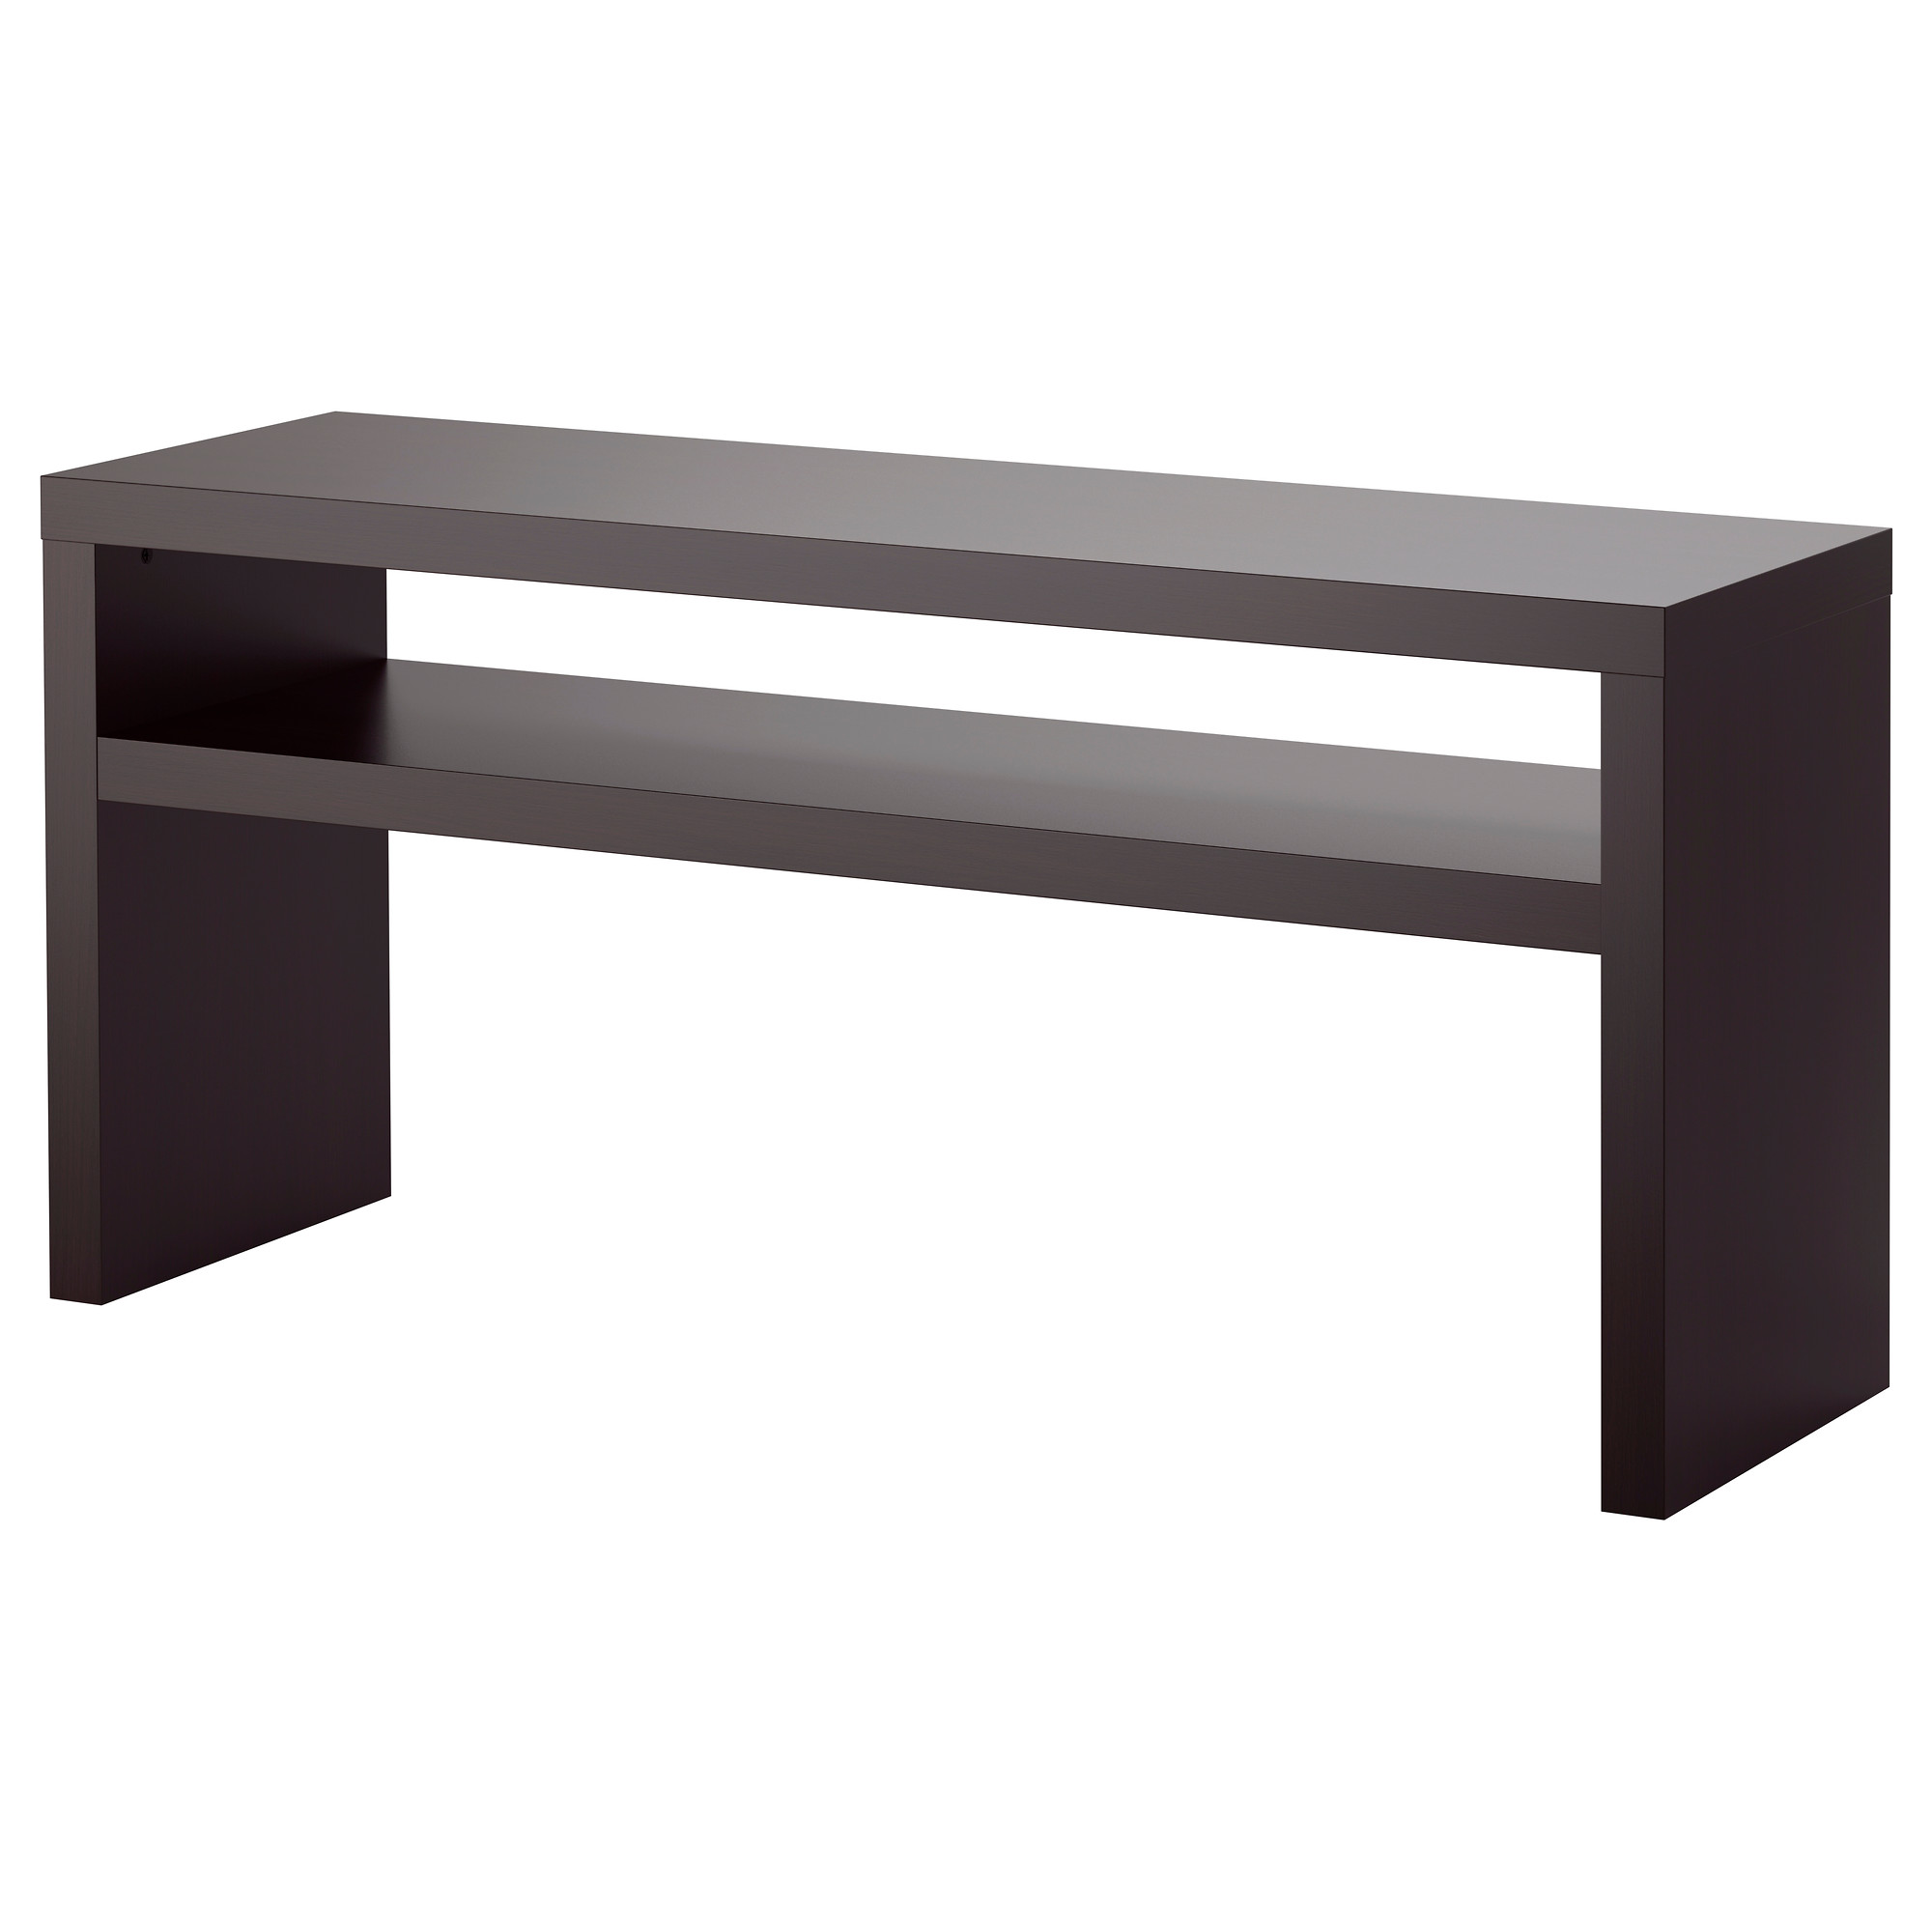 The console tables ikea for stylish and functional storage Console tables with storage